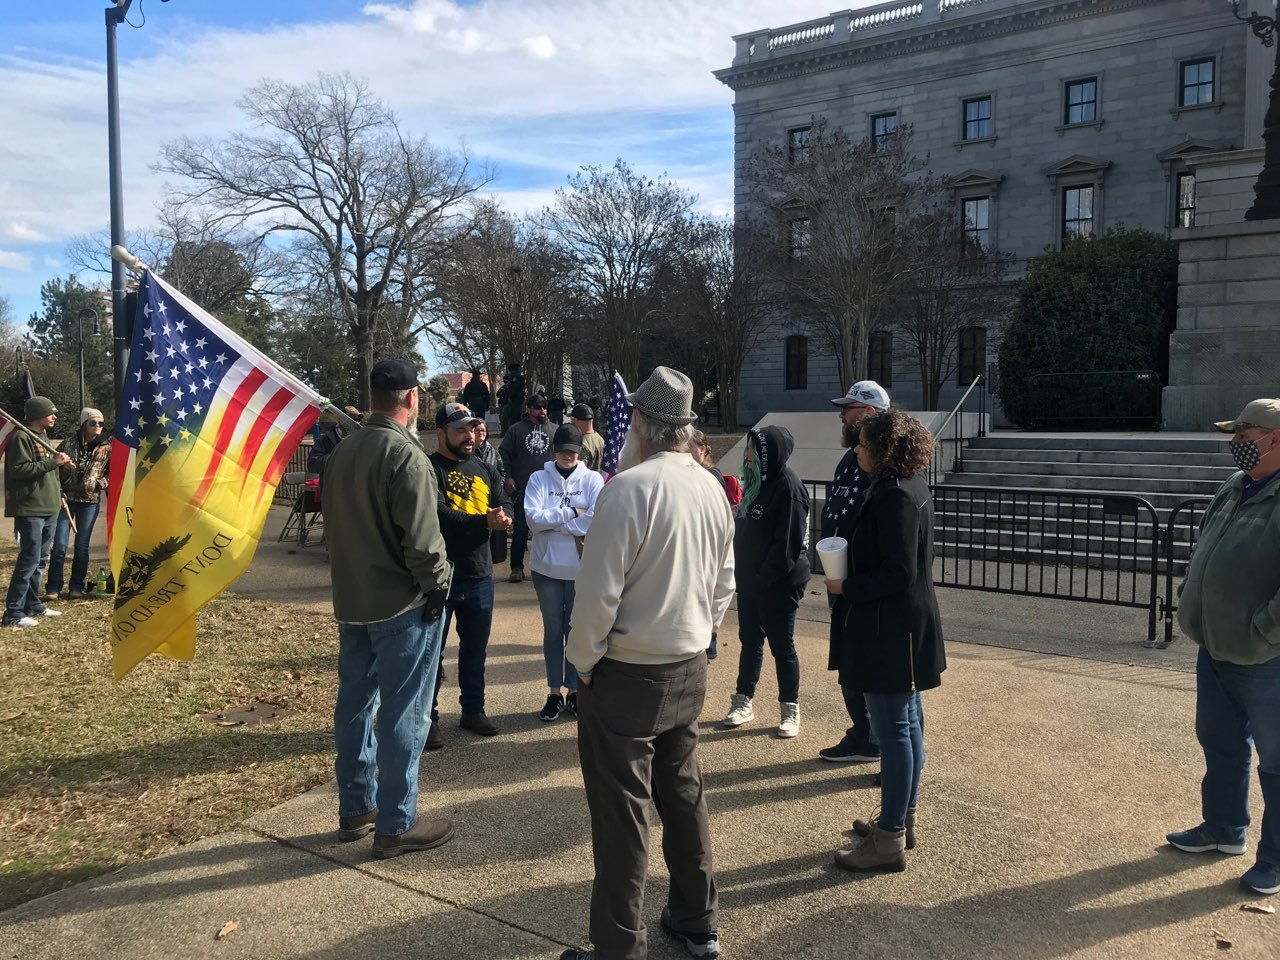 """""""Freedom of Speech"""" rally takes place at state house amid heightened security"""